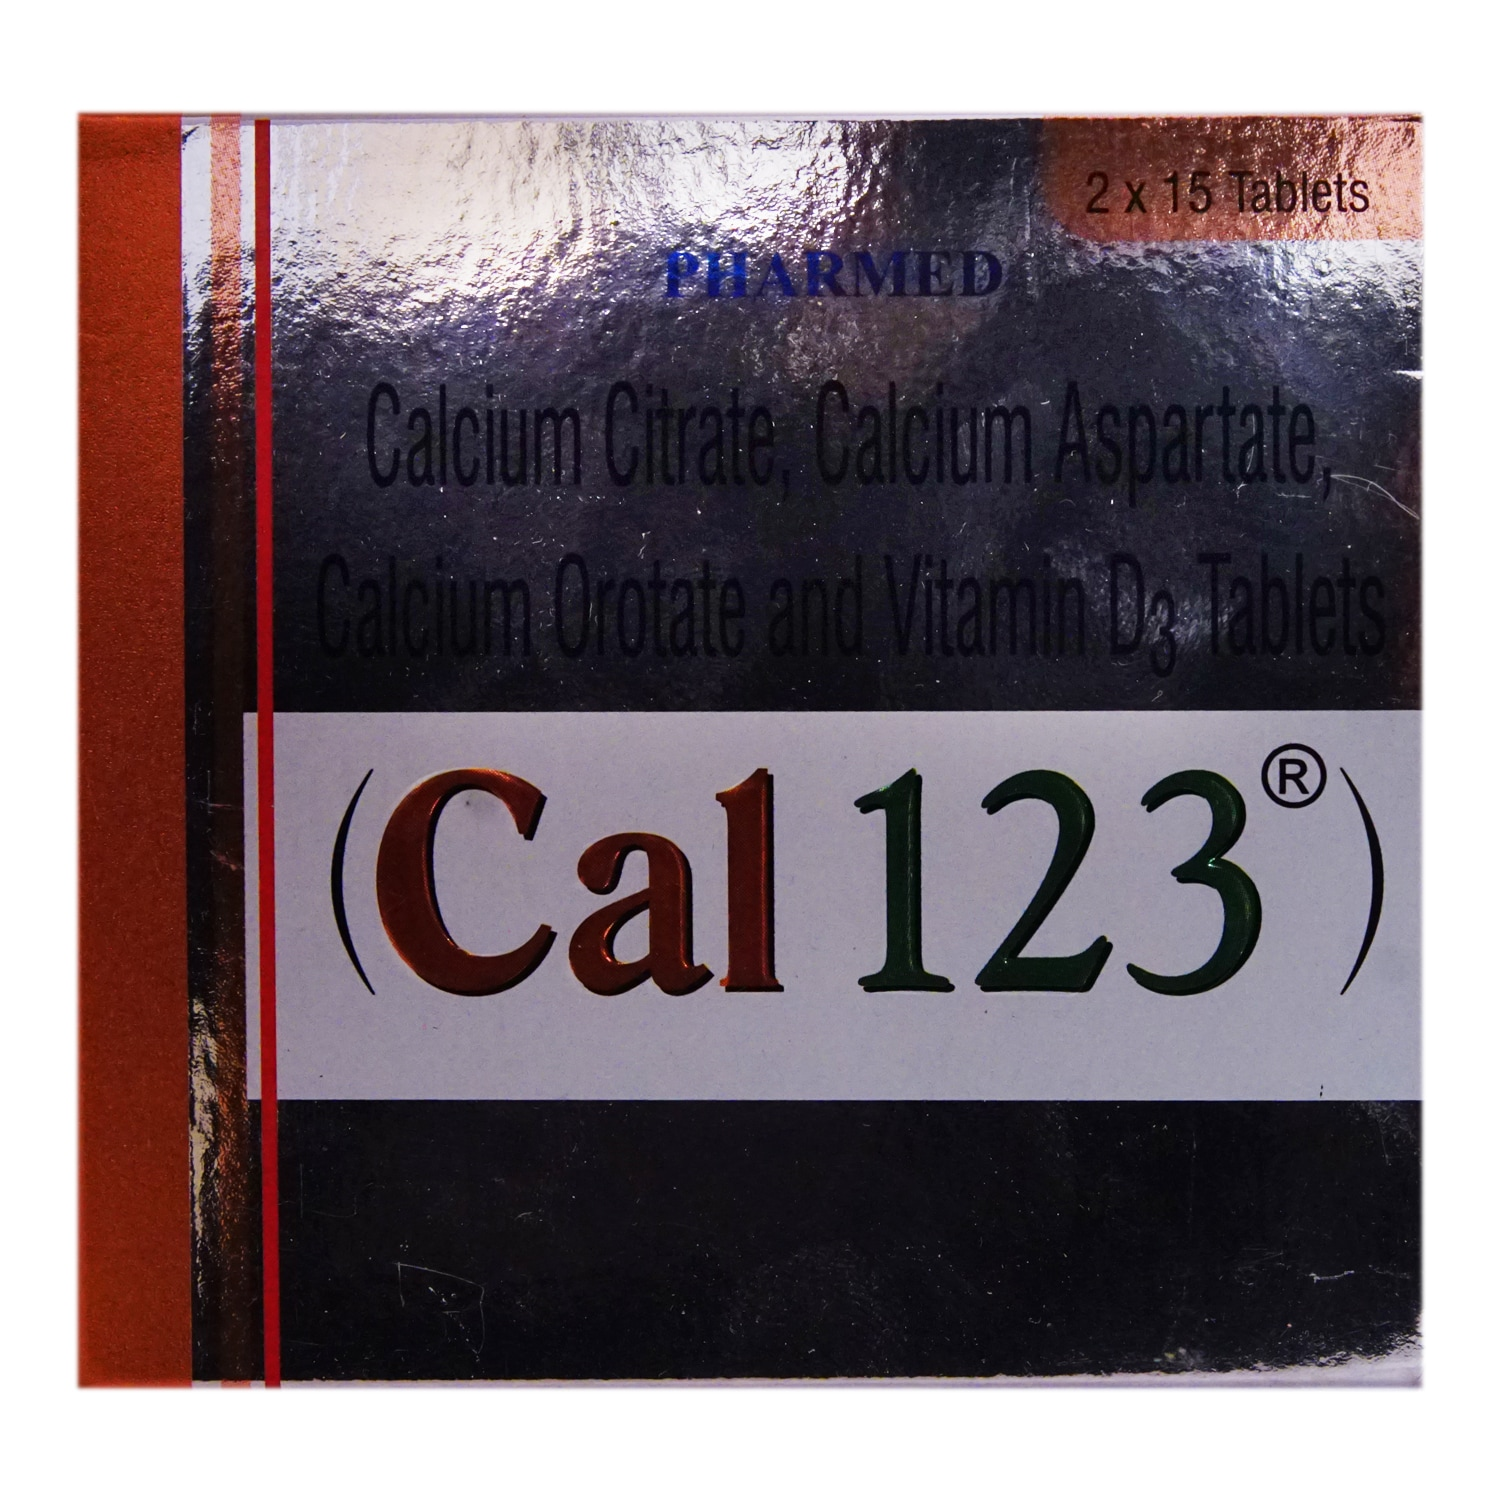 Cal 123 Tablet 15's